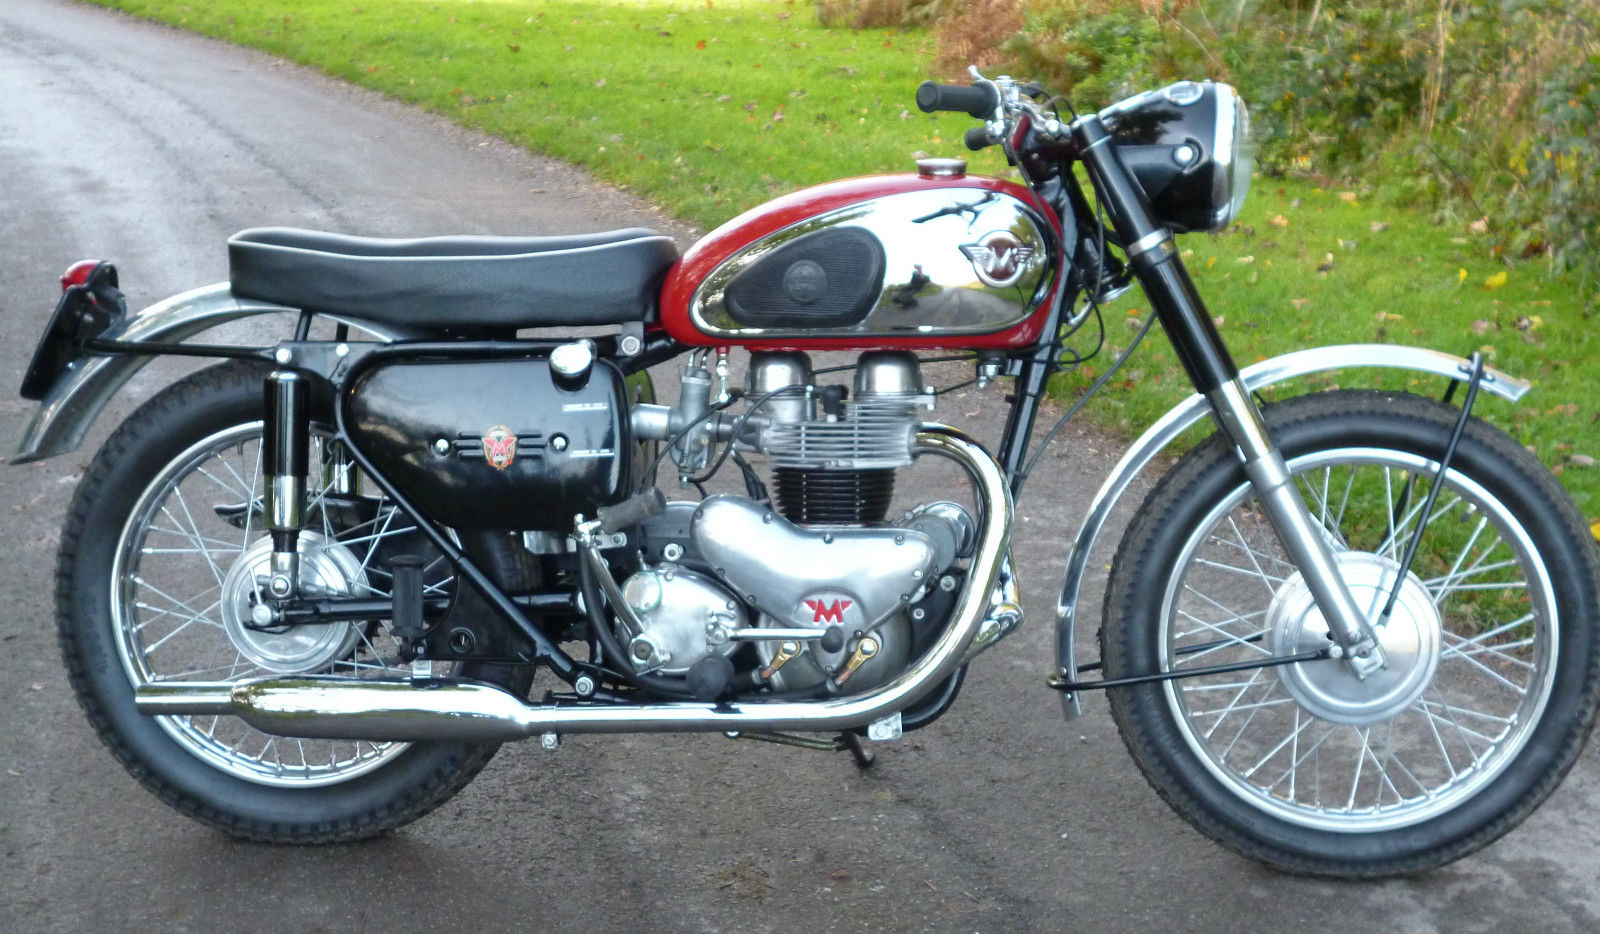 Restored Matchless G12 1960 Photographs At Classic Bikes